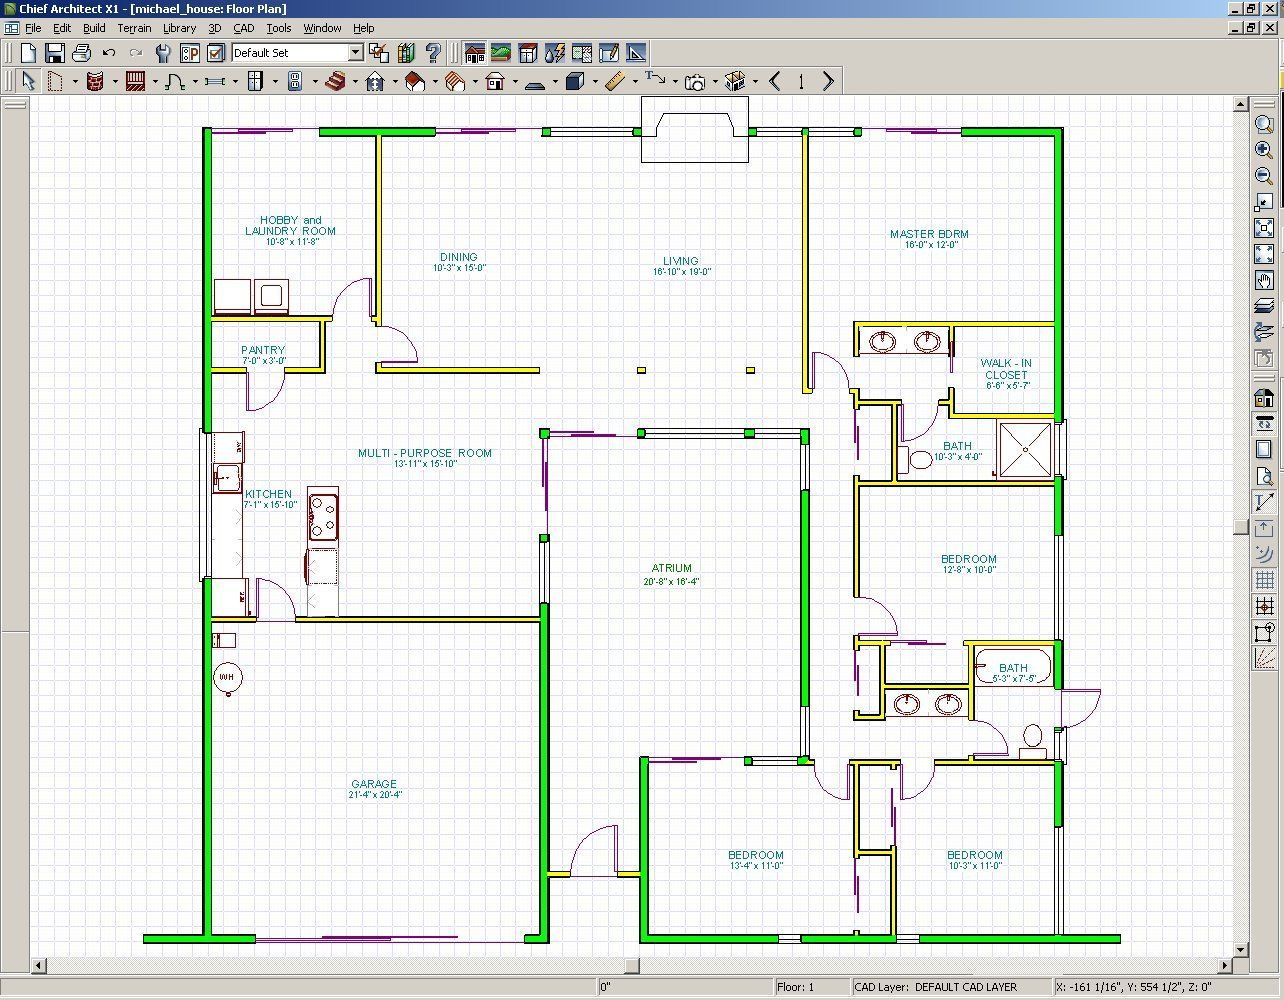 ... 1000+ images about House plans on Pinterest ...